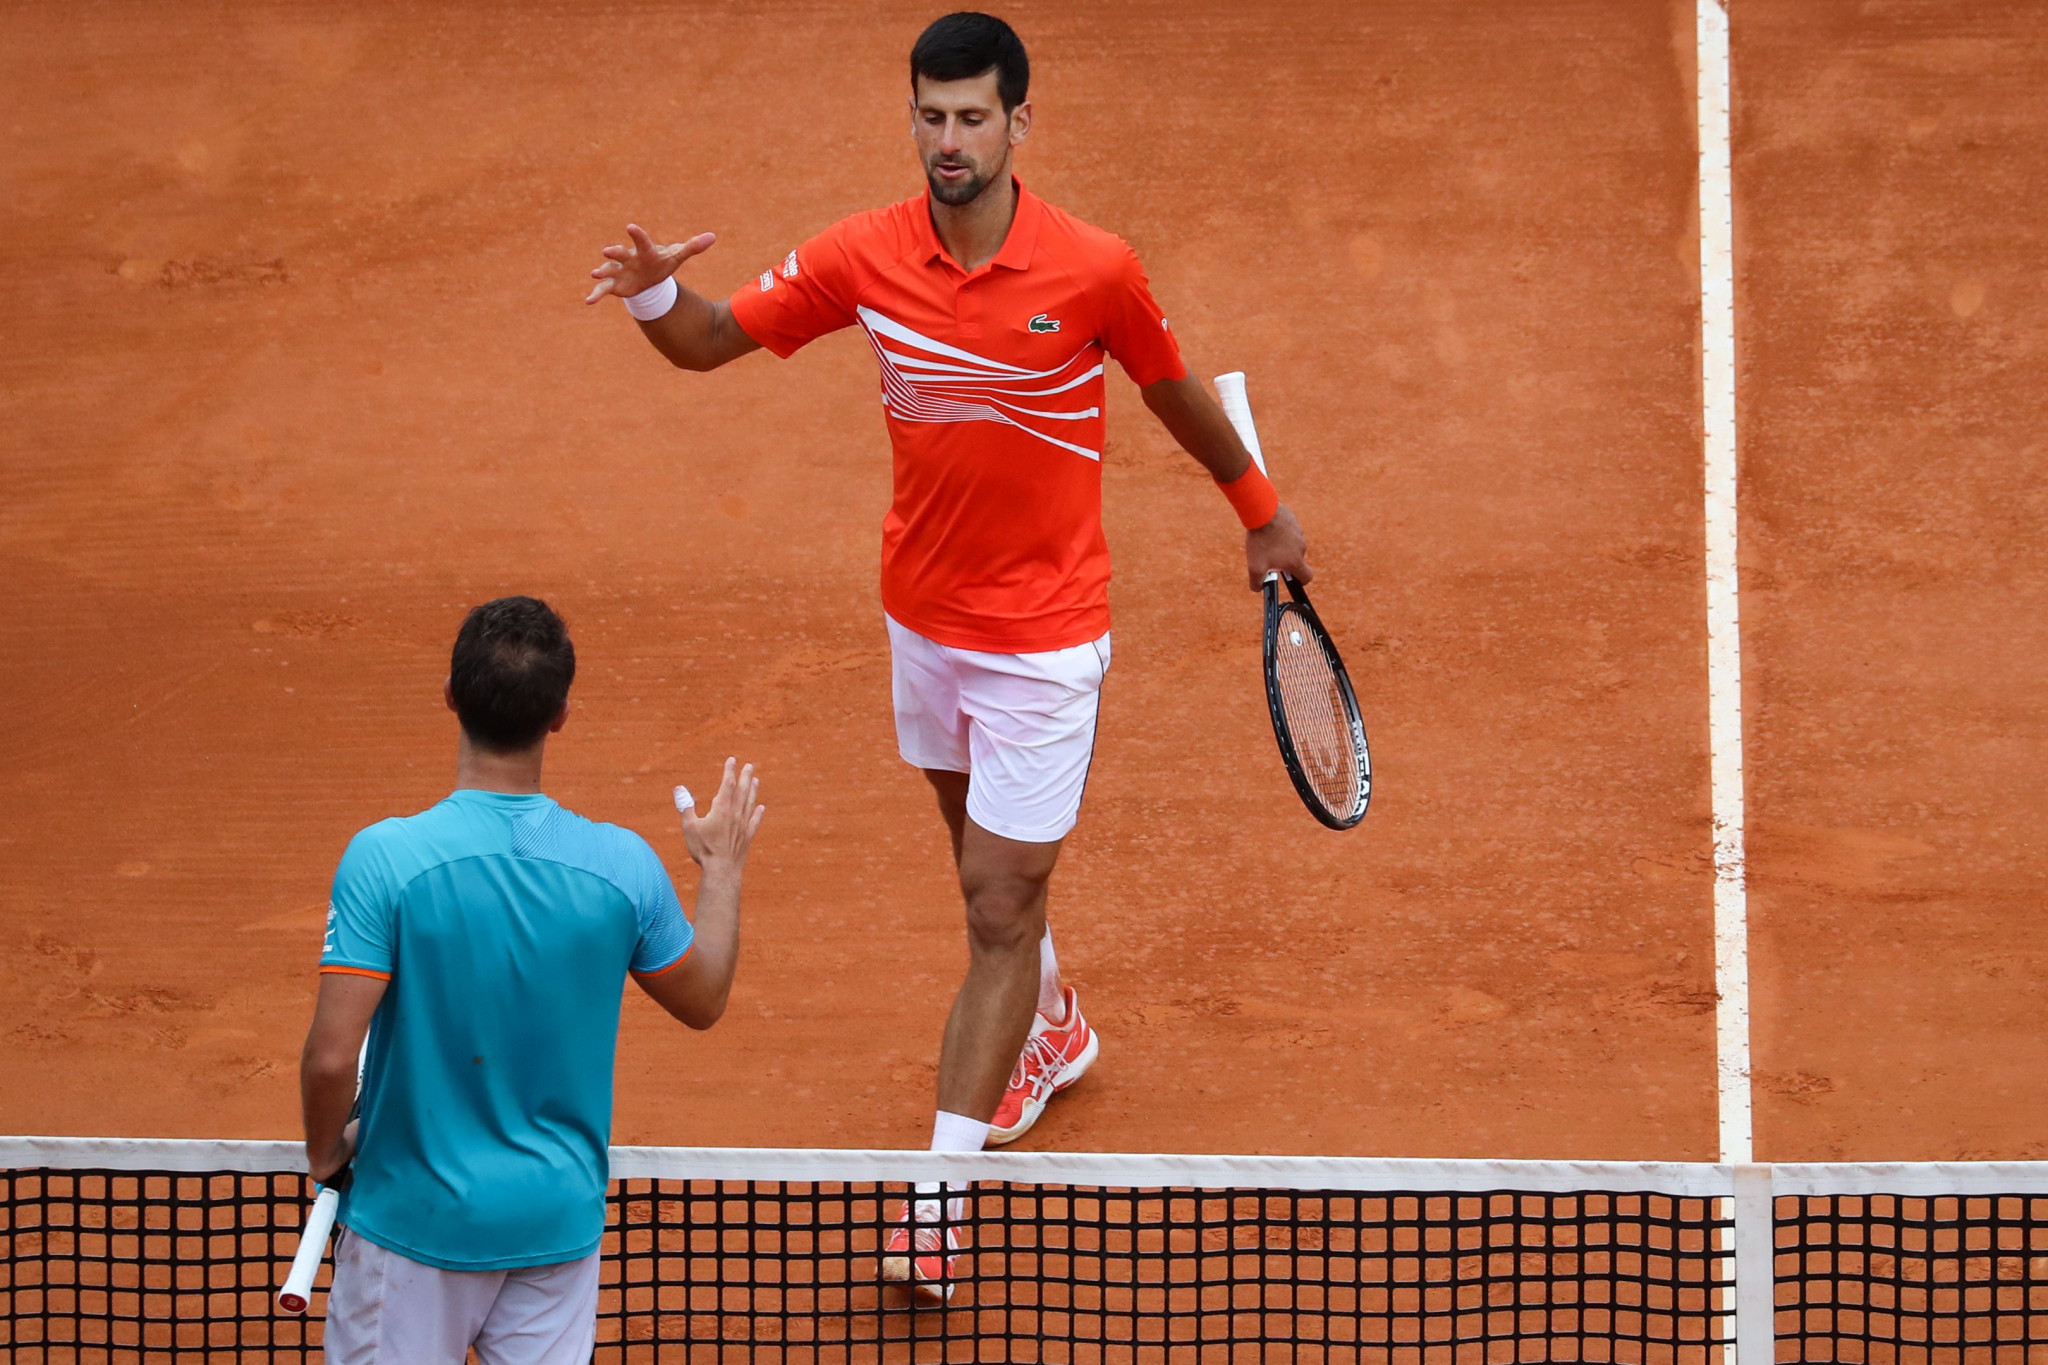 Djokovic rages through to second round at Monte Carlo Masters tennis